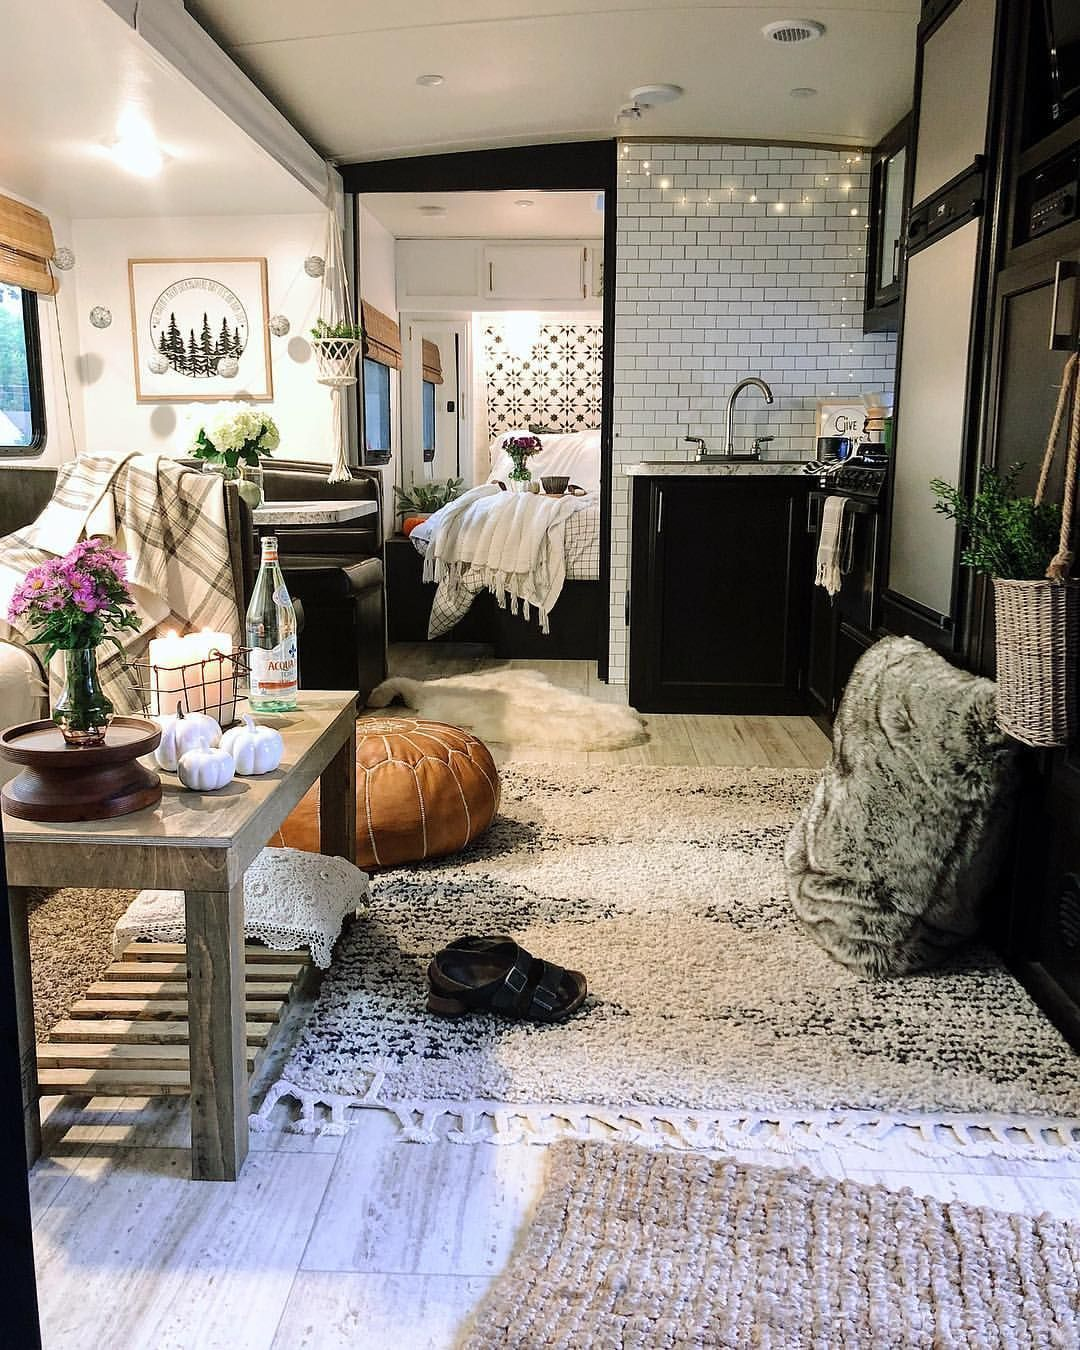 Living Room Additions Ideas: 7 Best Ideas For Trailer Interior